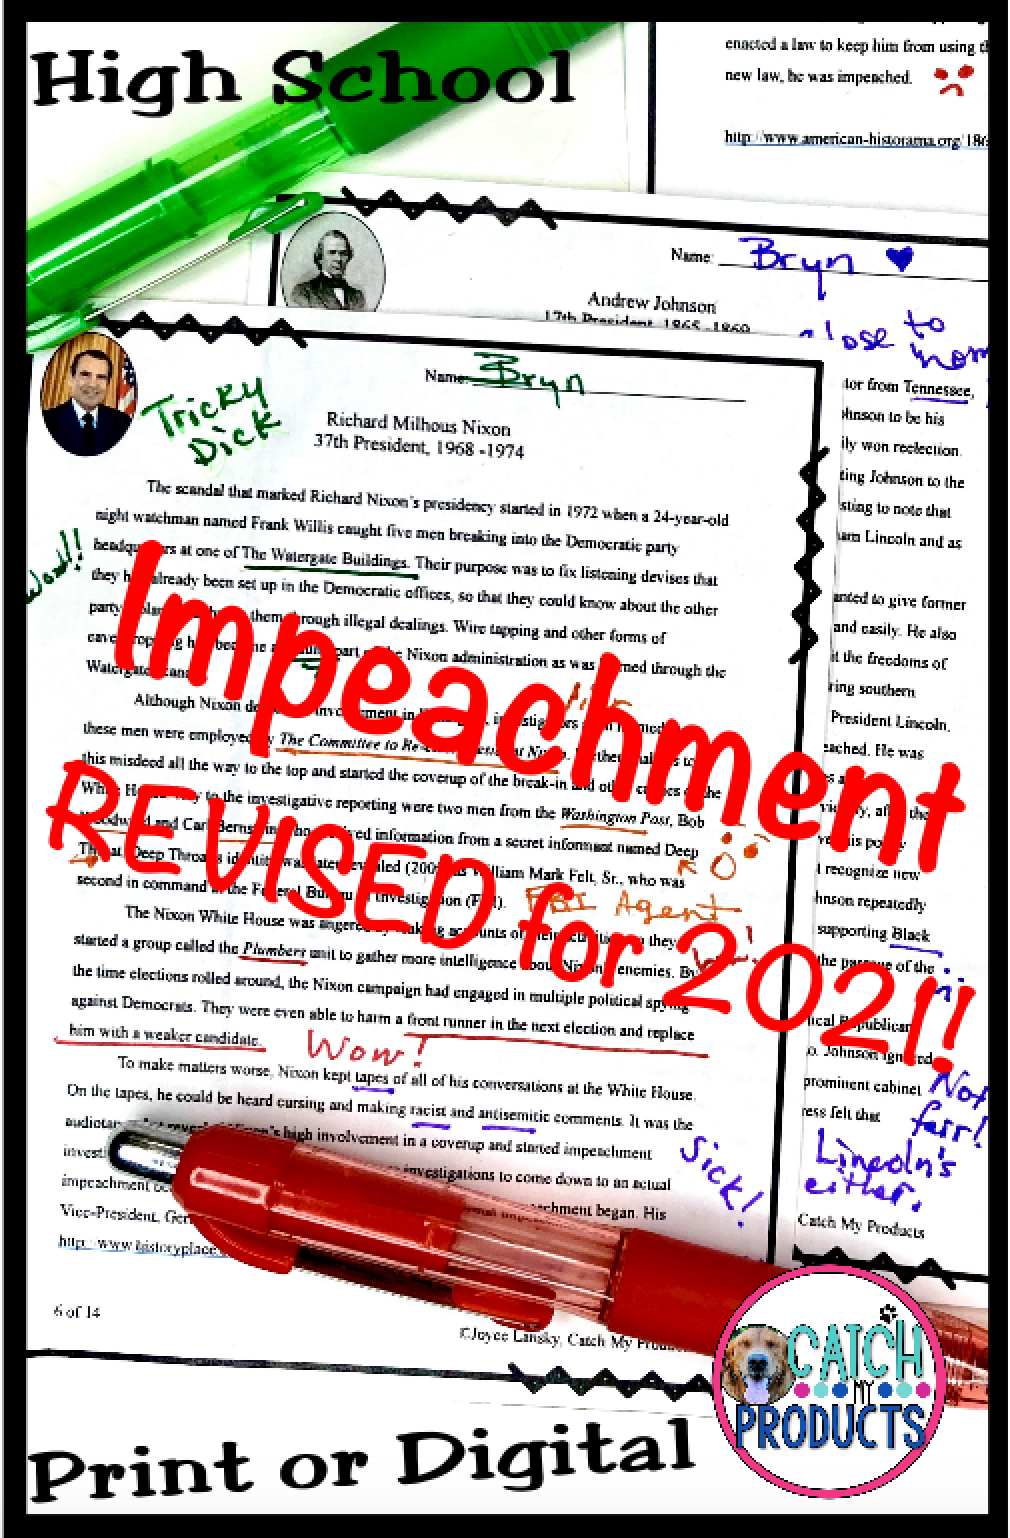 Presidential Impeachment High School Reading Comprehension And Questions In 2021 High School Reading Reading Comprehension Passages Comprehension Passage [ 1538 x 1010 Pixel ]